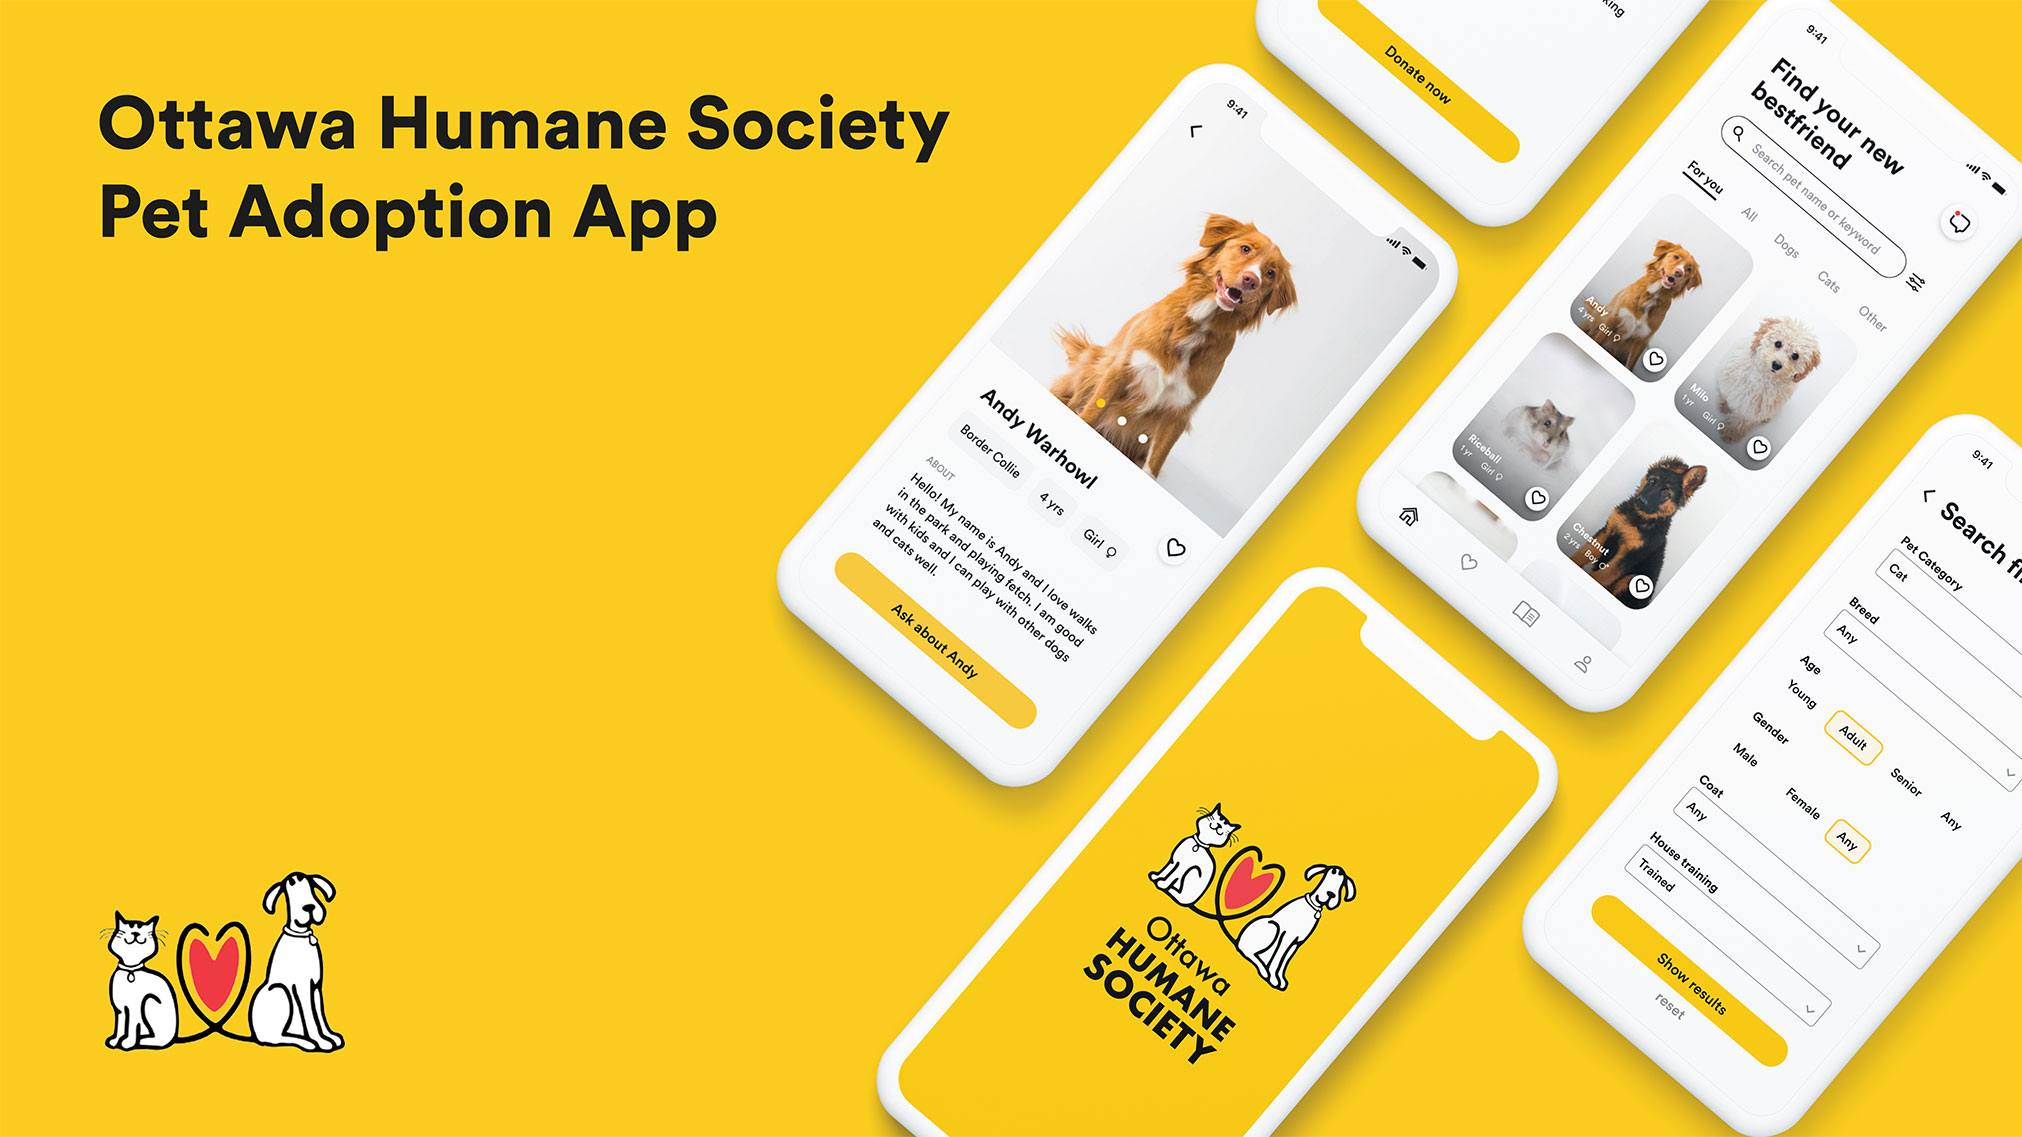 This mobile redesign for Ottawa Humane Society's app is created to help increase the number of adoptions by connecting adopters with the perfect pet that will fit their lifestyle and personality.